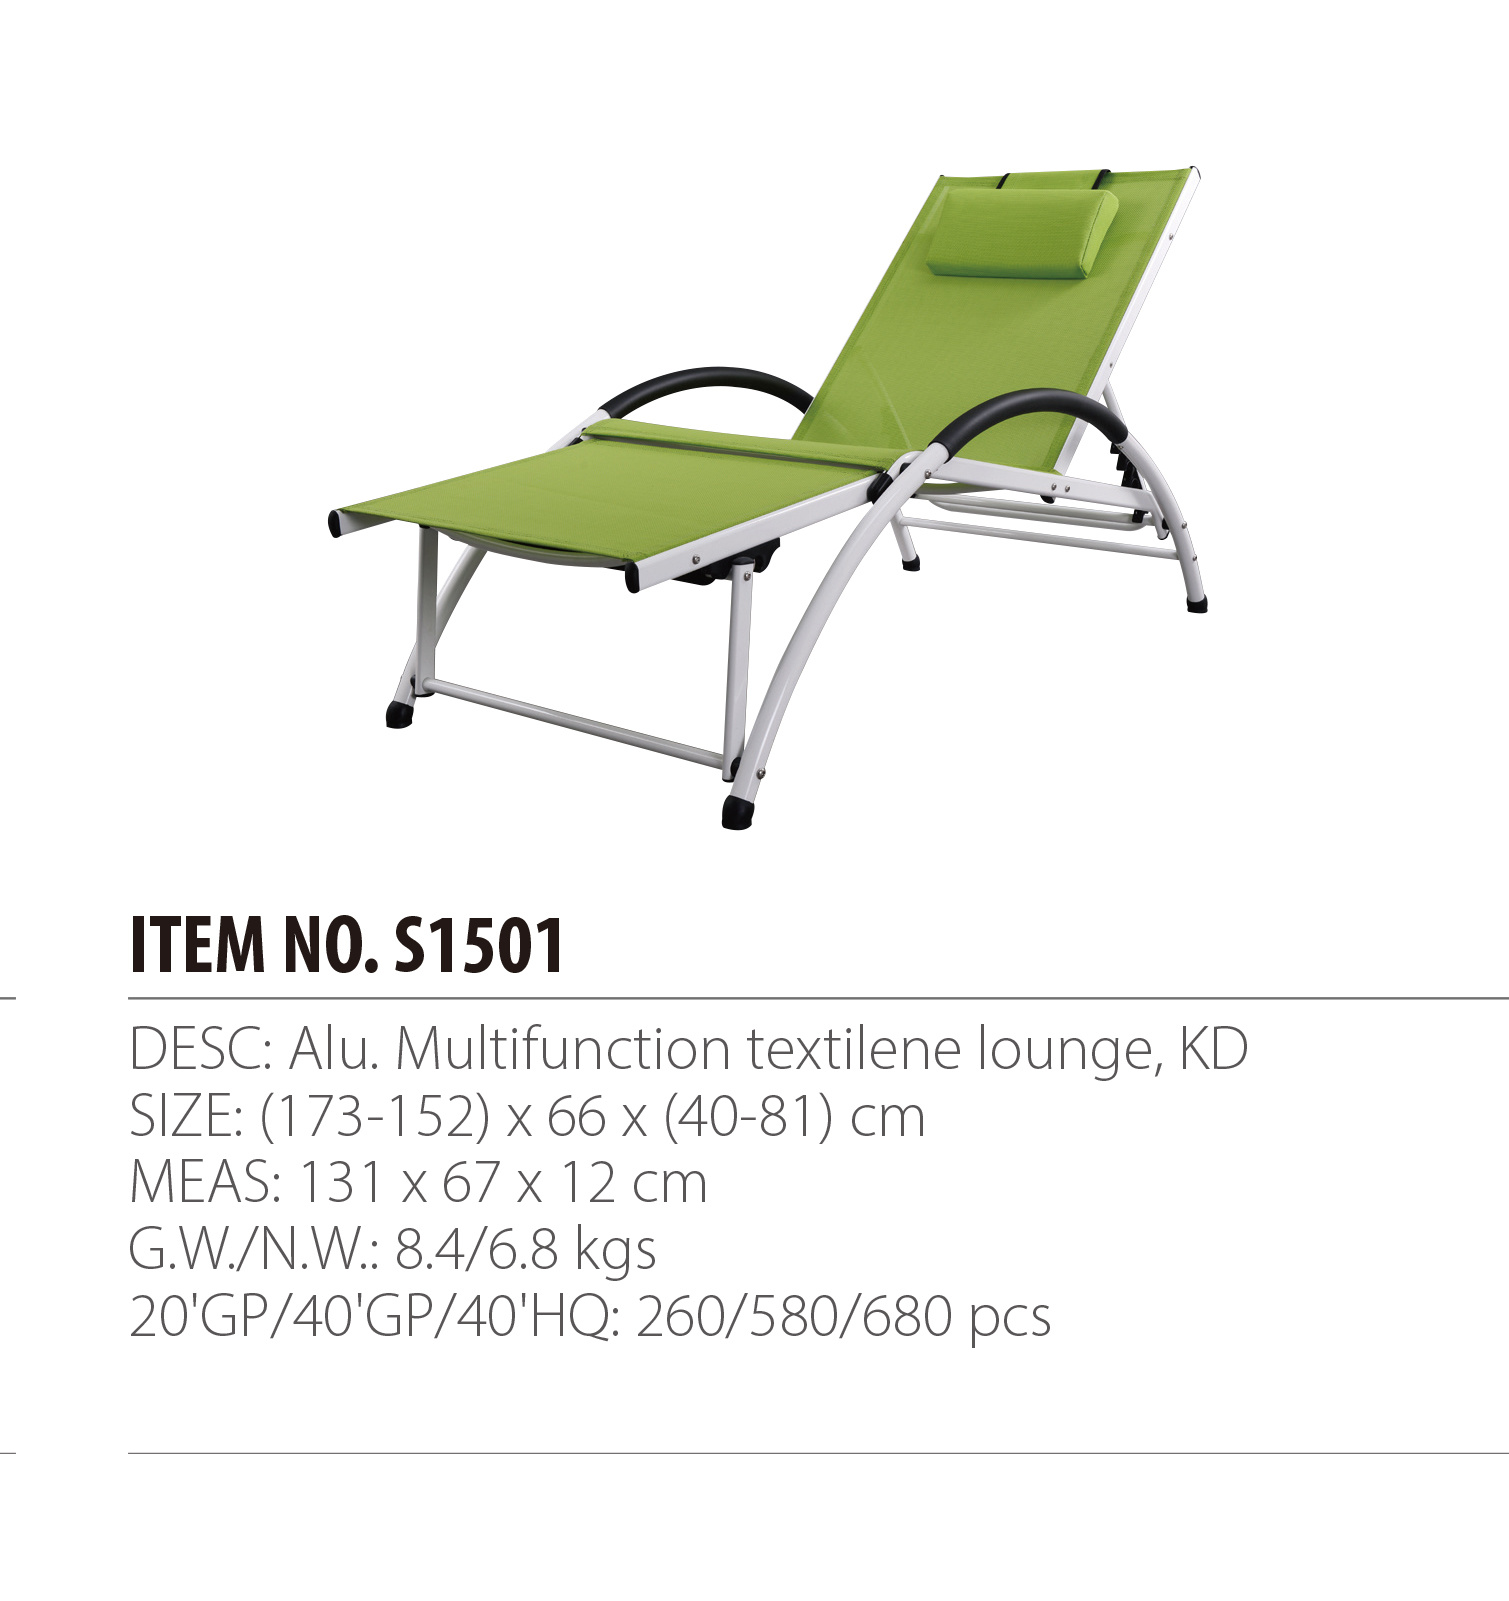 - China Beach Chair Patio Chaise Lounge Outdoor Chaise Lounge Garden